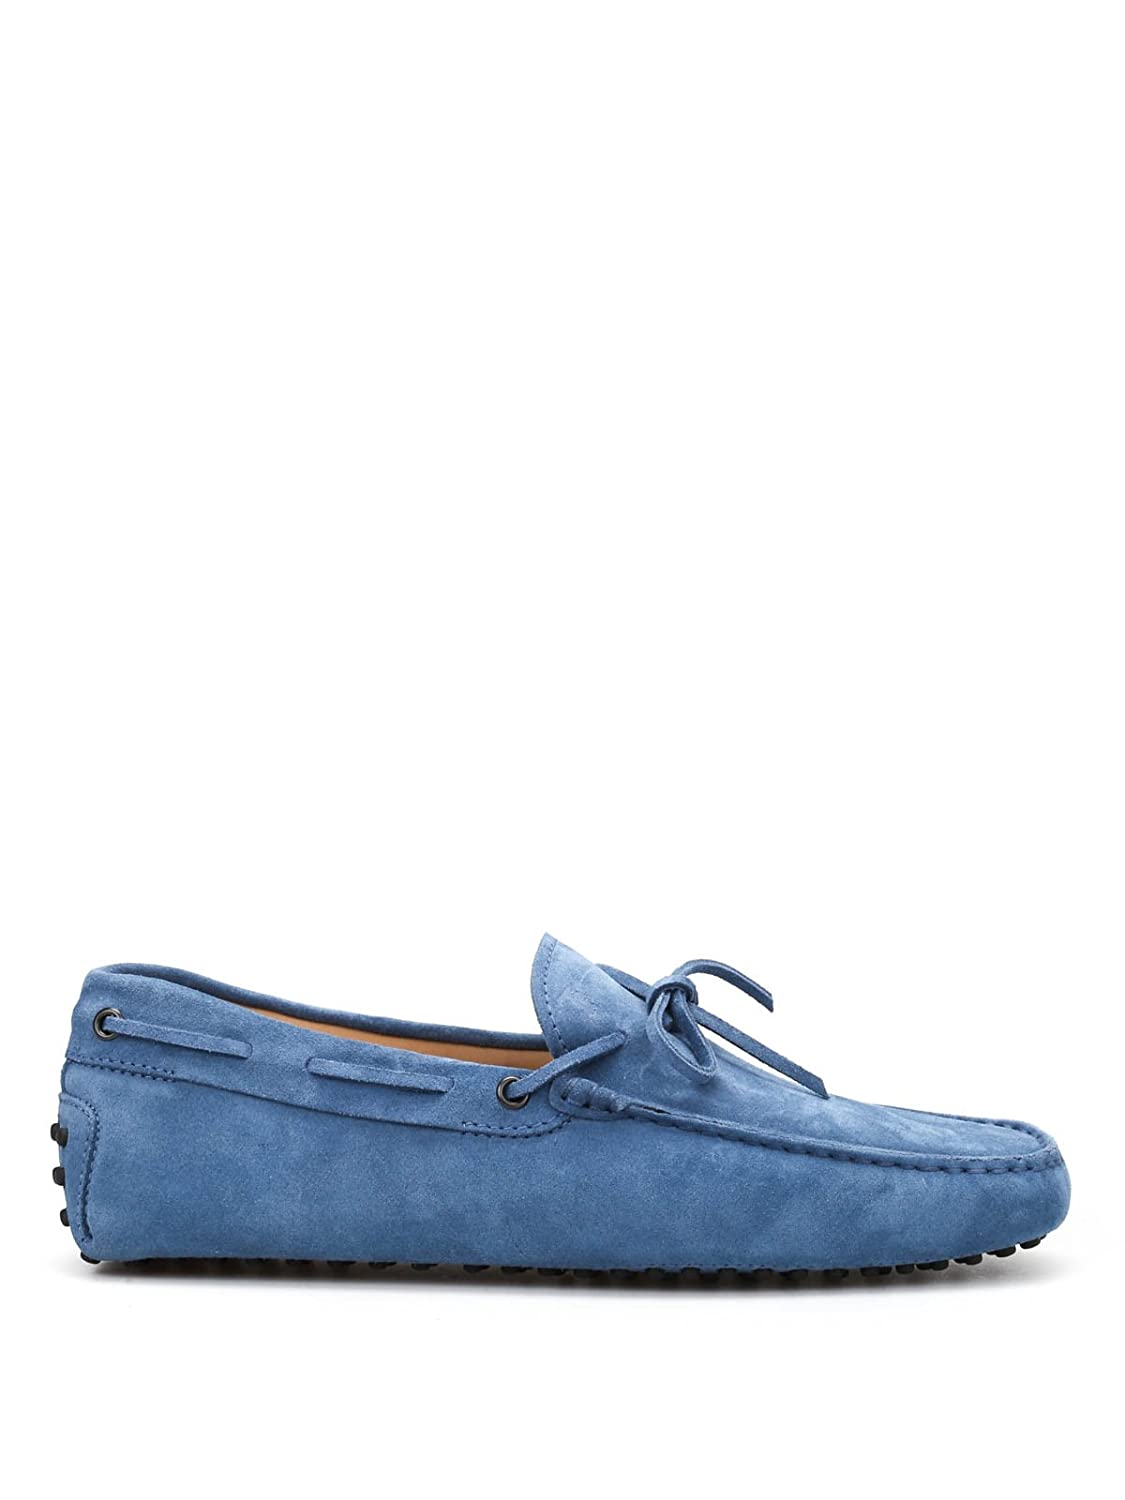 - TOD'S Men Mocasines Hauszapatos azul Claro Loafers & Slippers